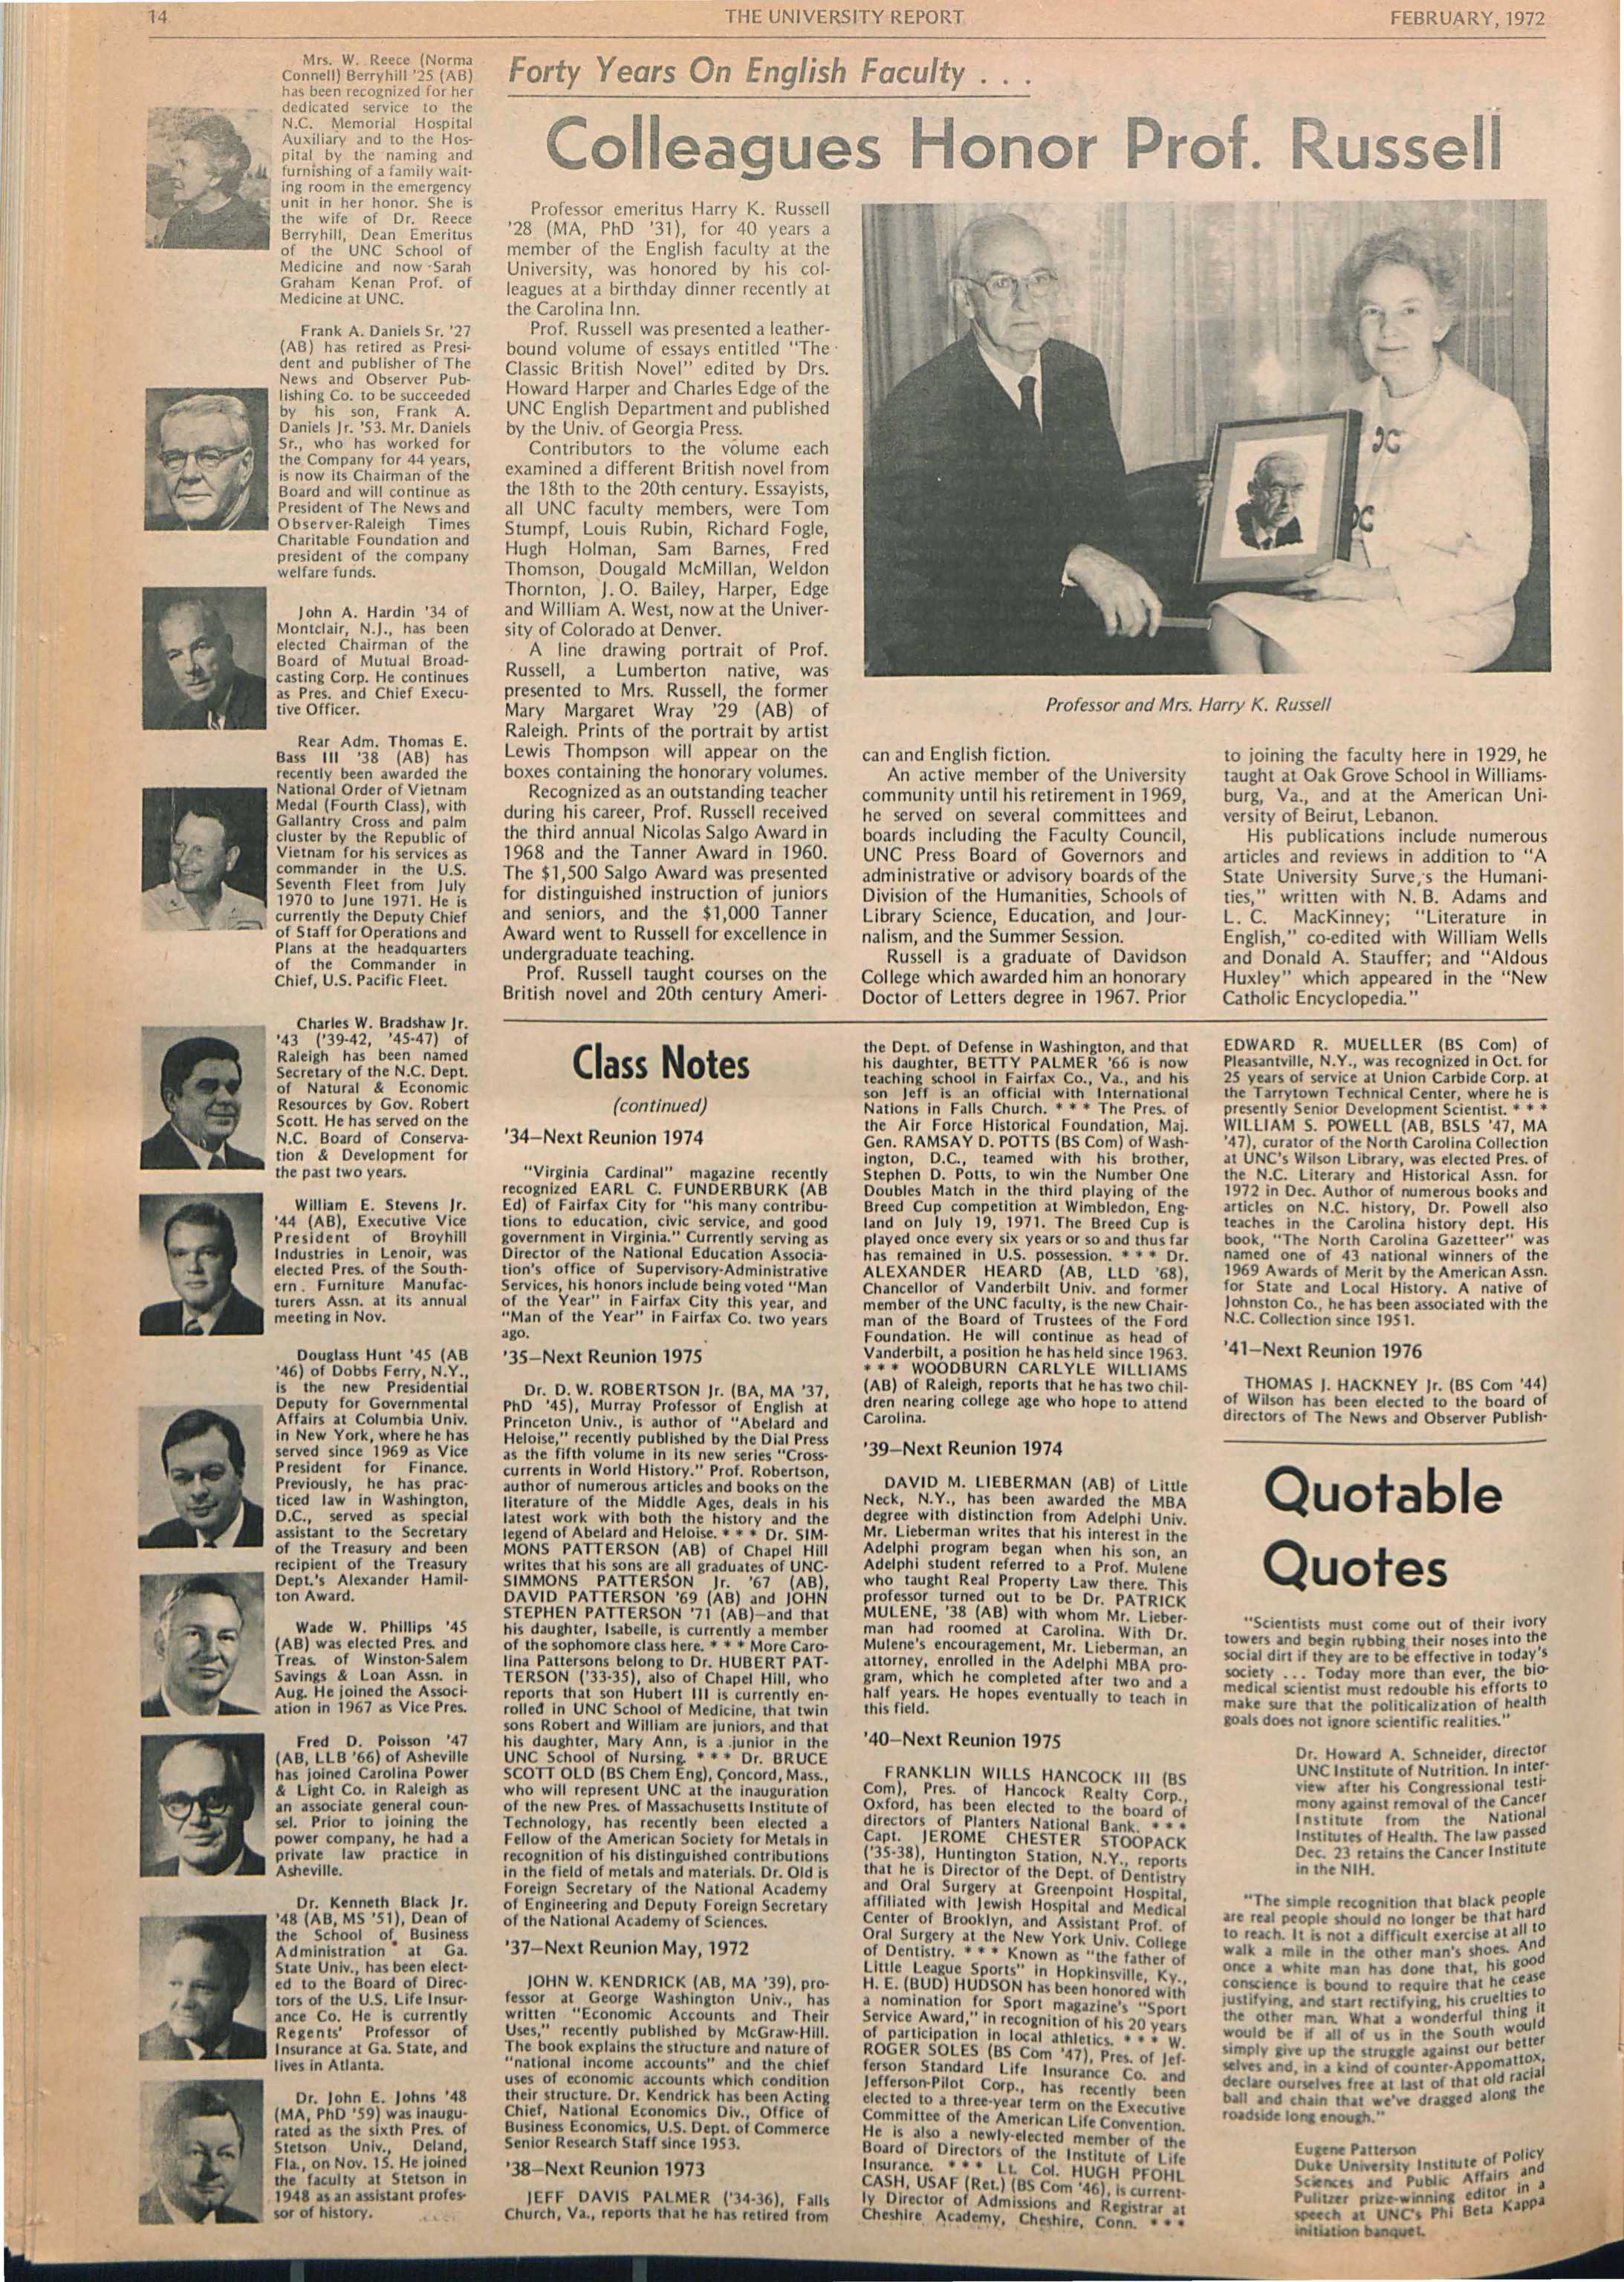 The University Report - February 1972 - page 14